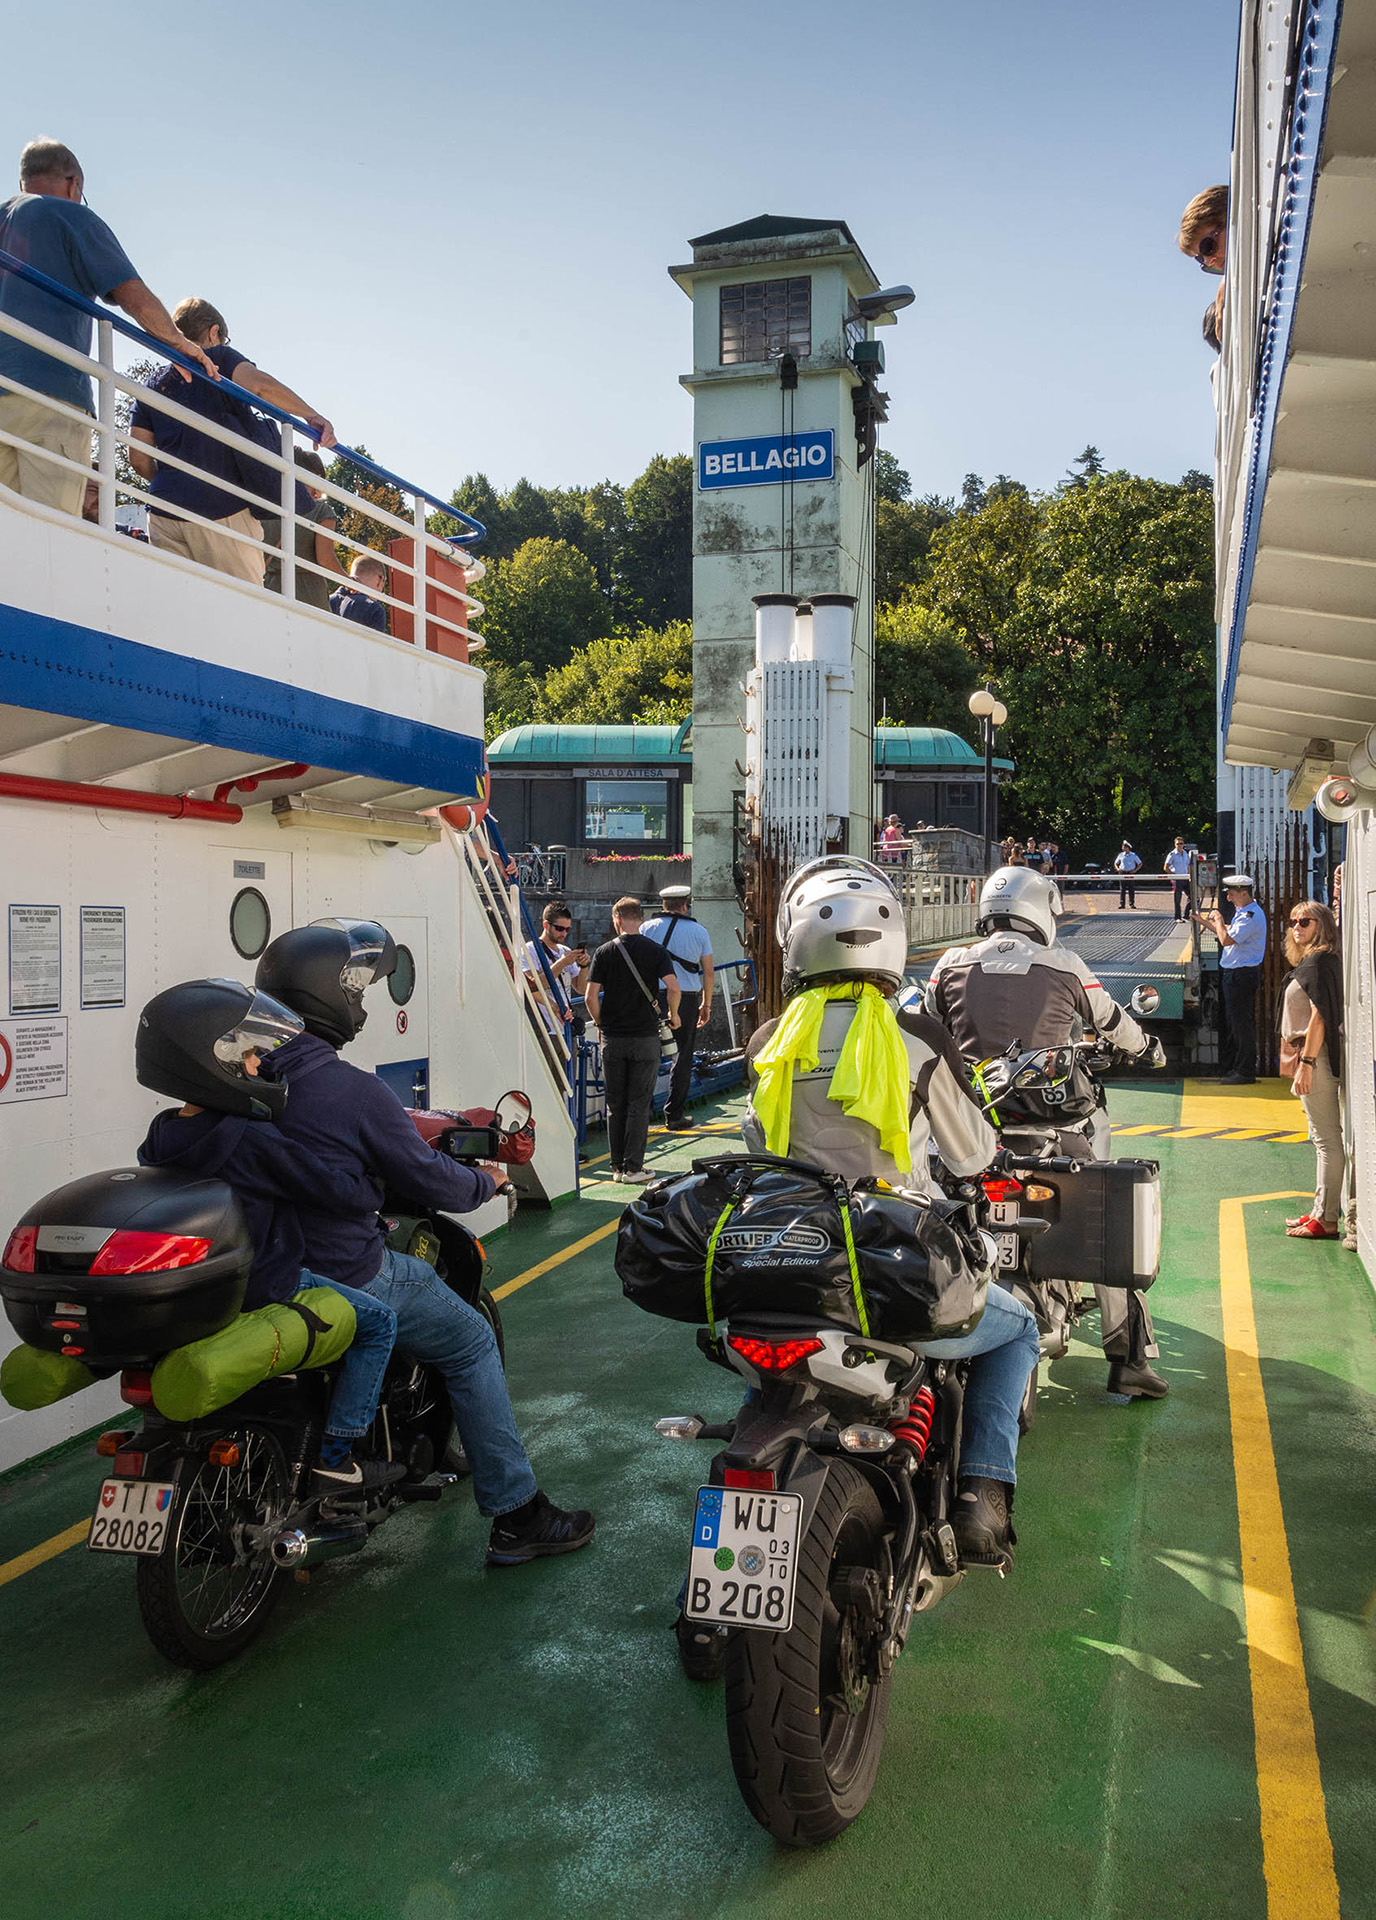 The ferries carry passengers and vehicles, are regular and inexpensive; the various routes link up towns around the lakeshore allowing the visitor many options for exploring charming streets, shops, villas, gardens and gastronomy